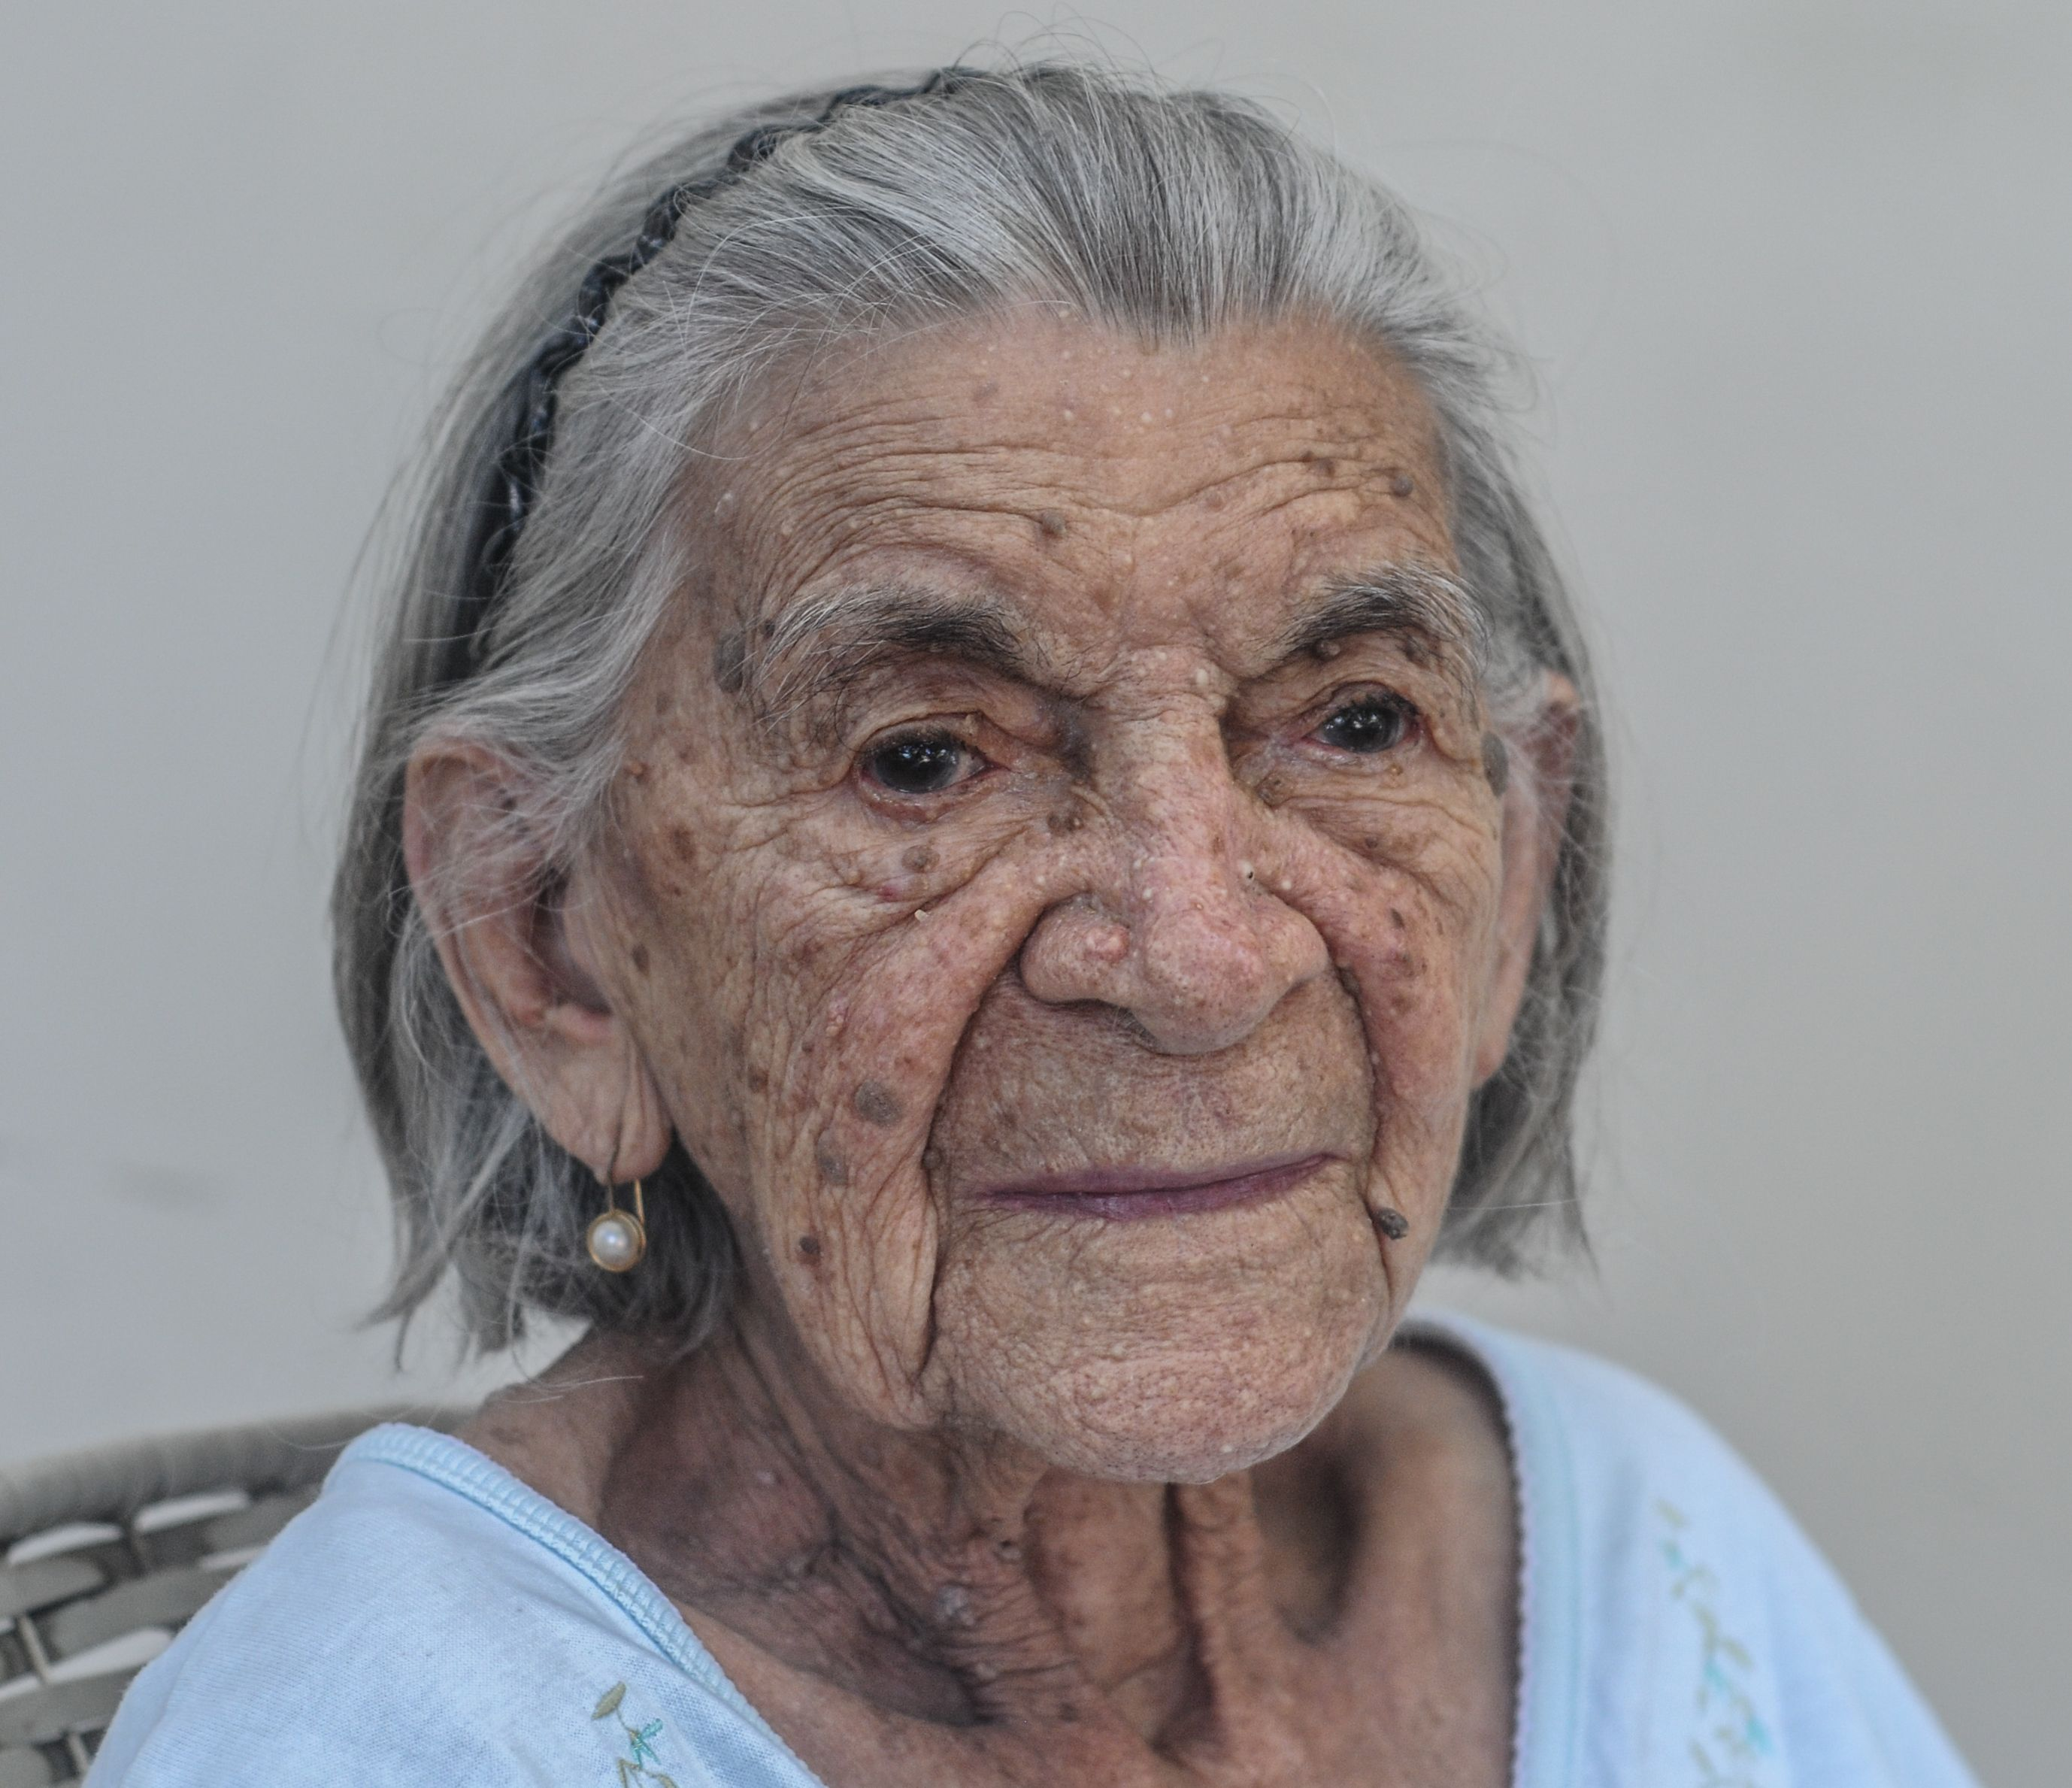 nosy venezuelan woman of 94 years old from margarita island